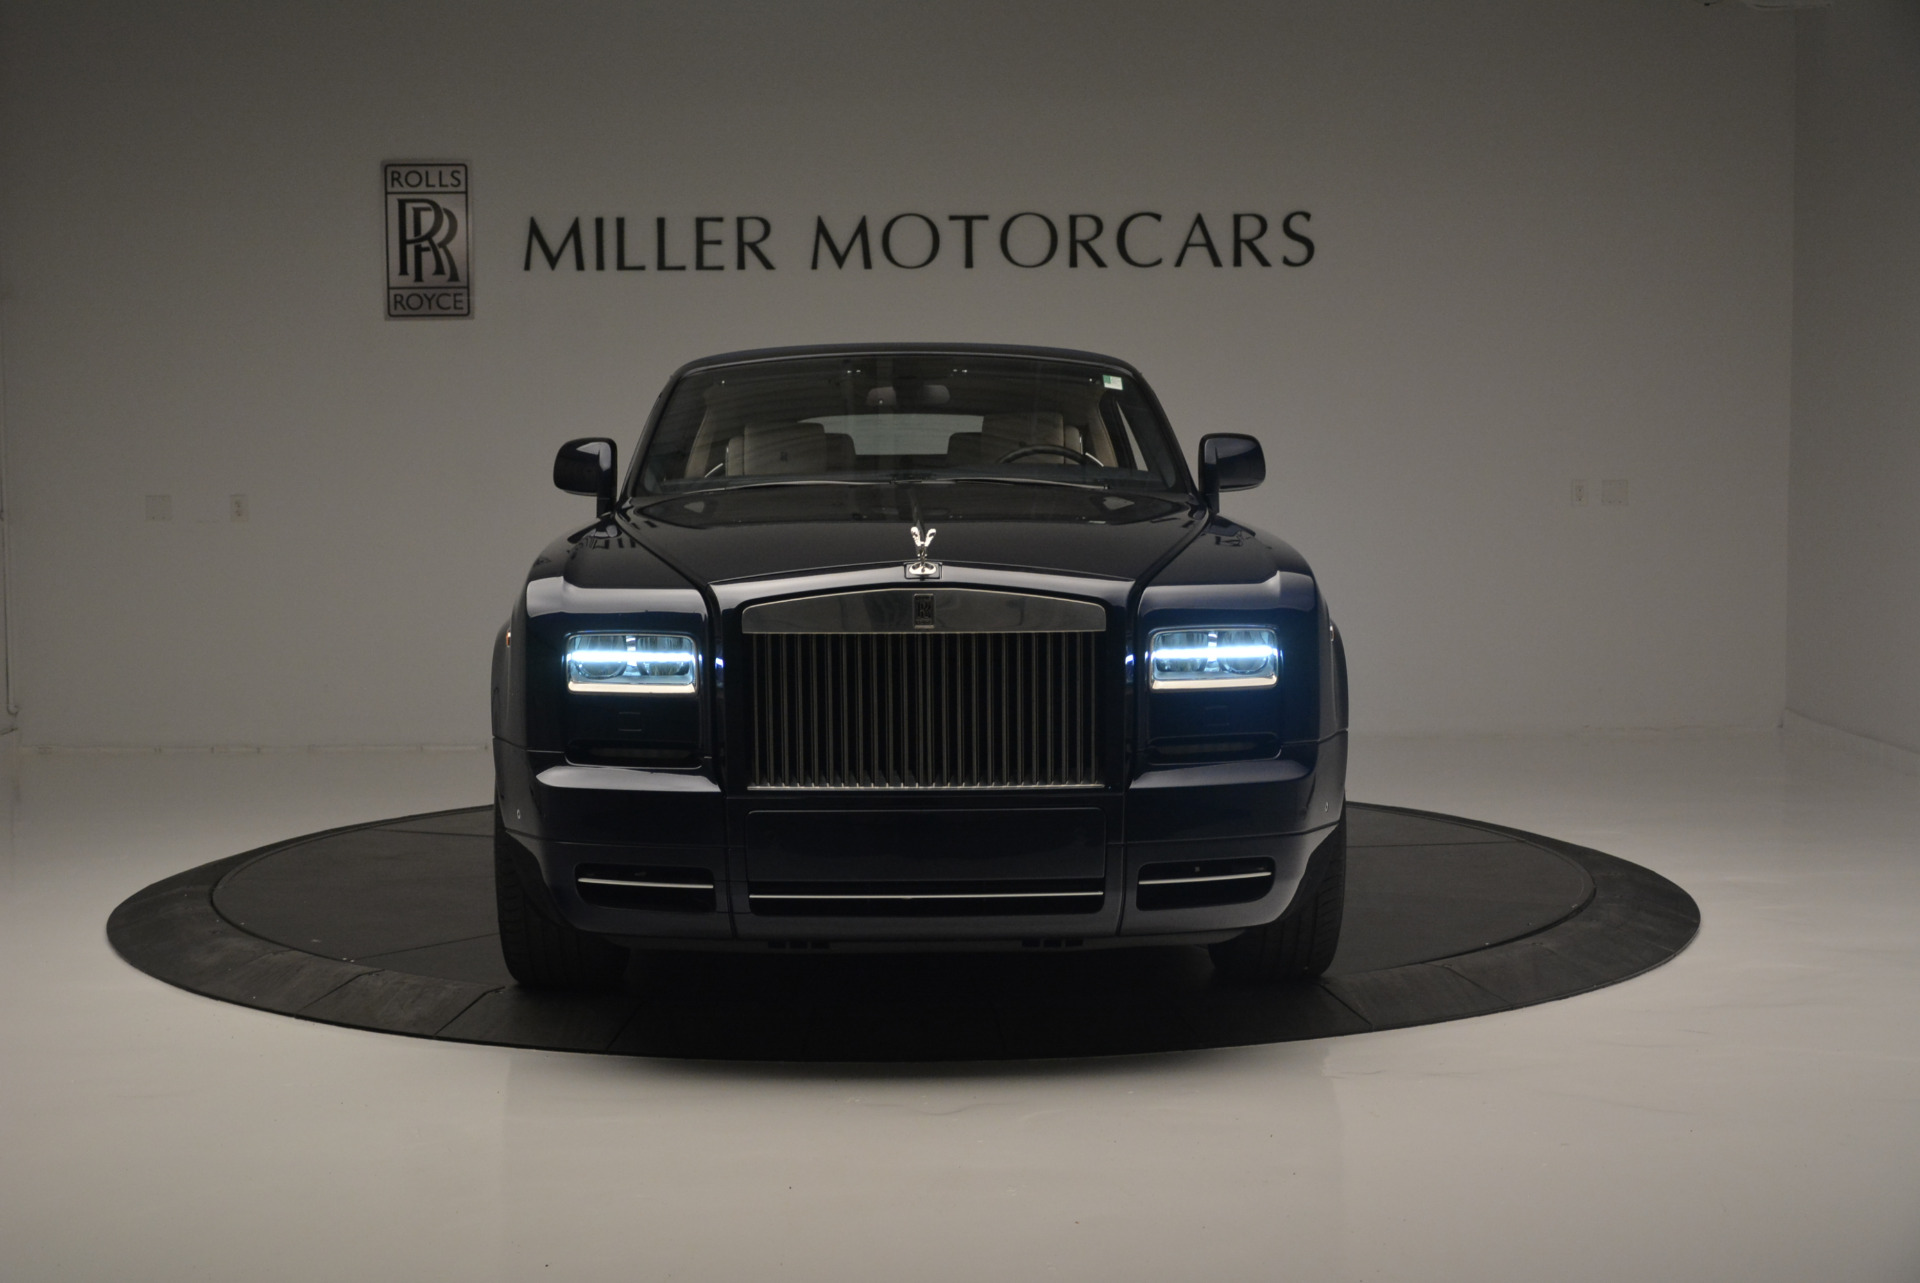 Used 2014 Rolls-Royce Phantom Drophead Coupe  For Sale In Westport, CT 2356_p16